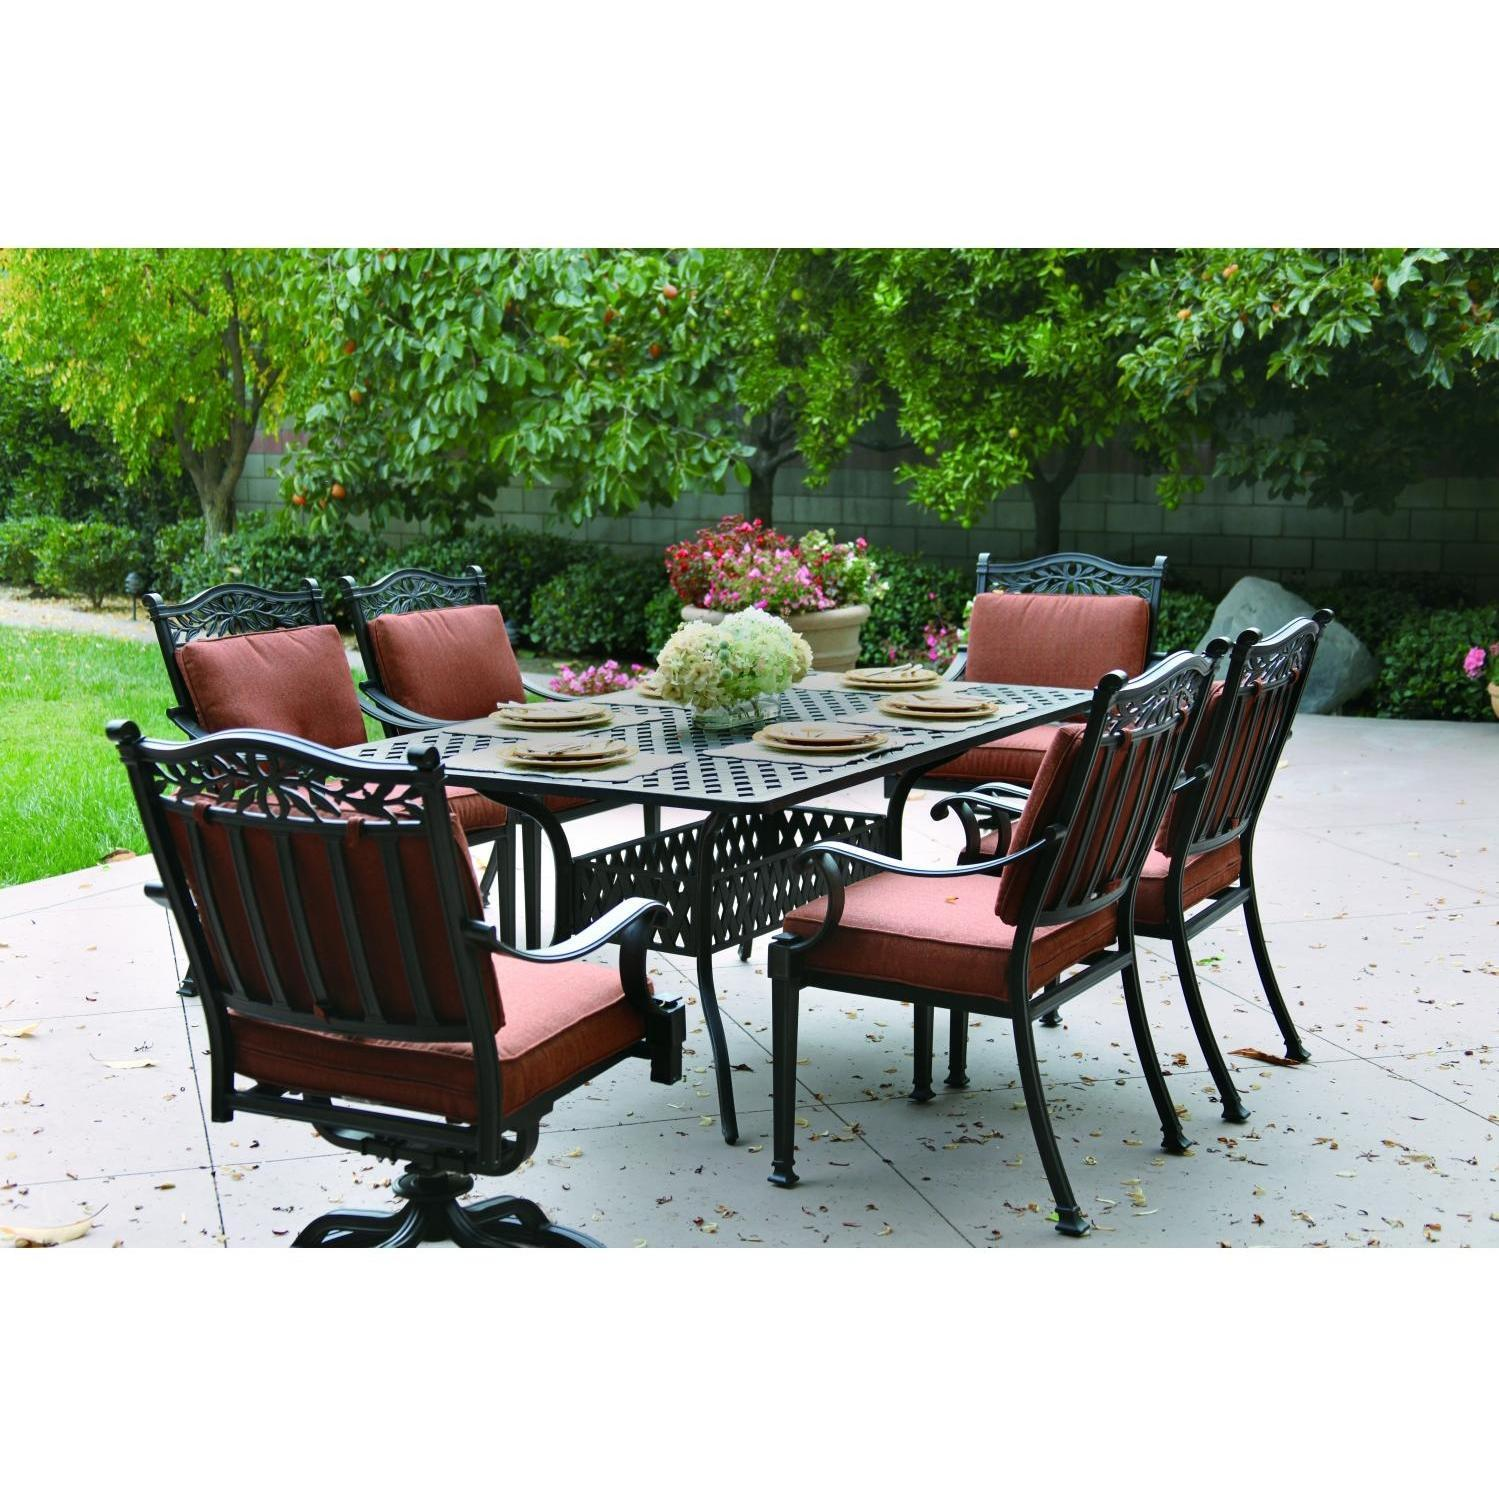 outdoor dining sets photo - 9